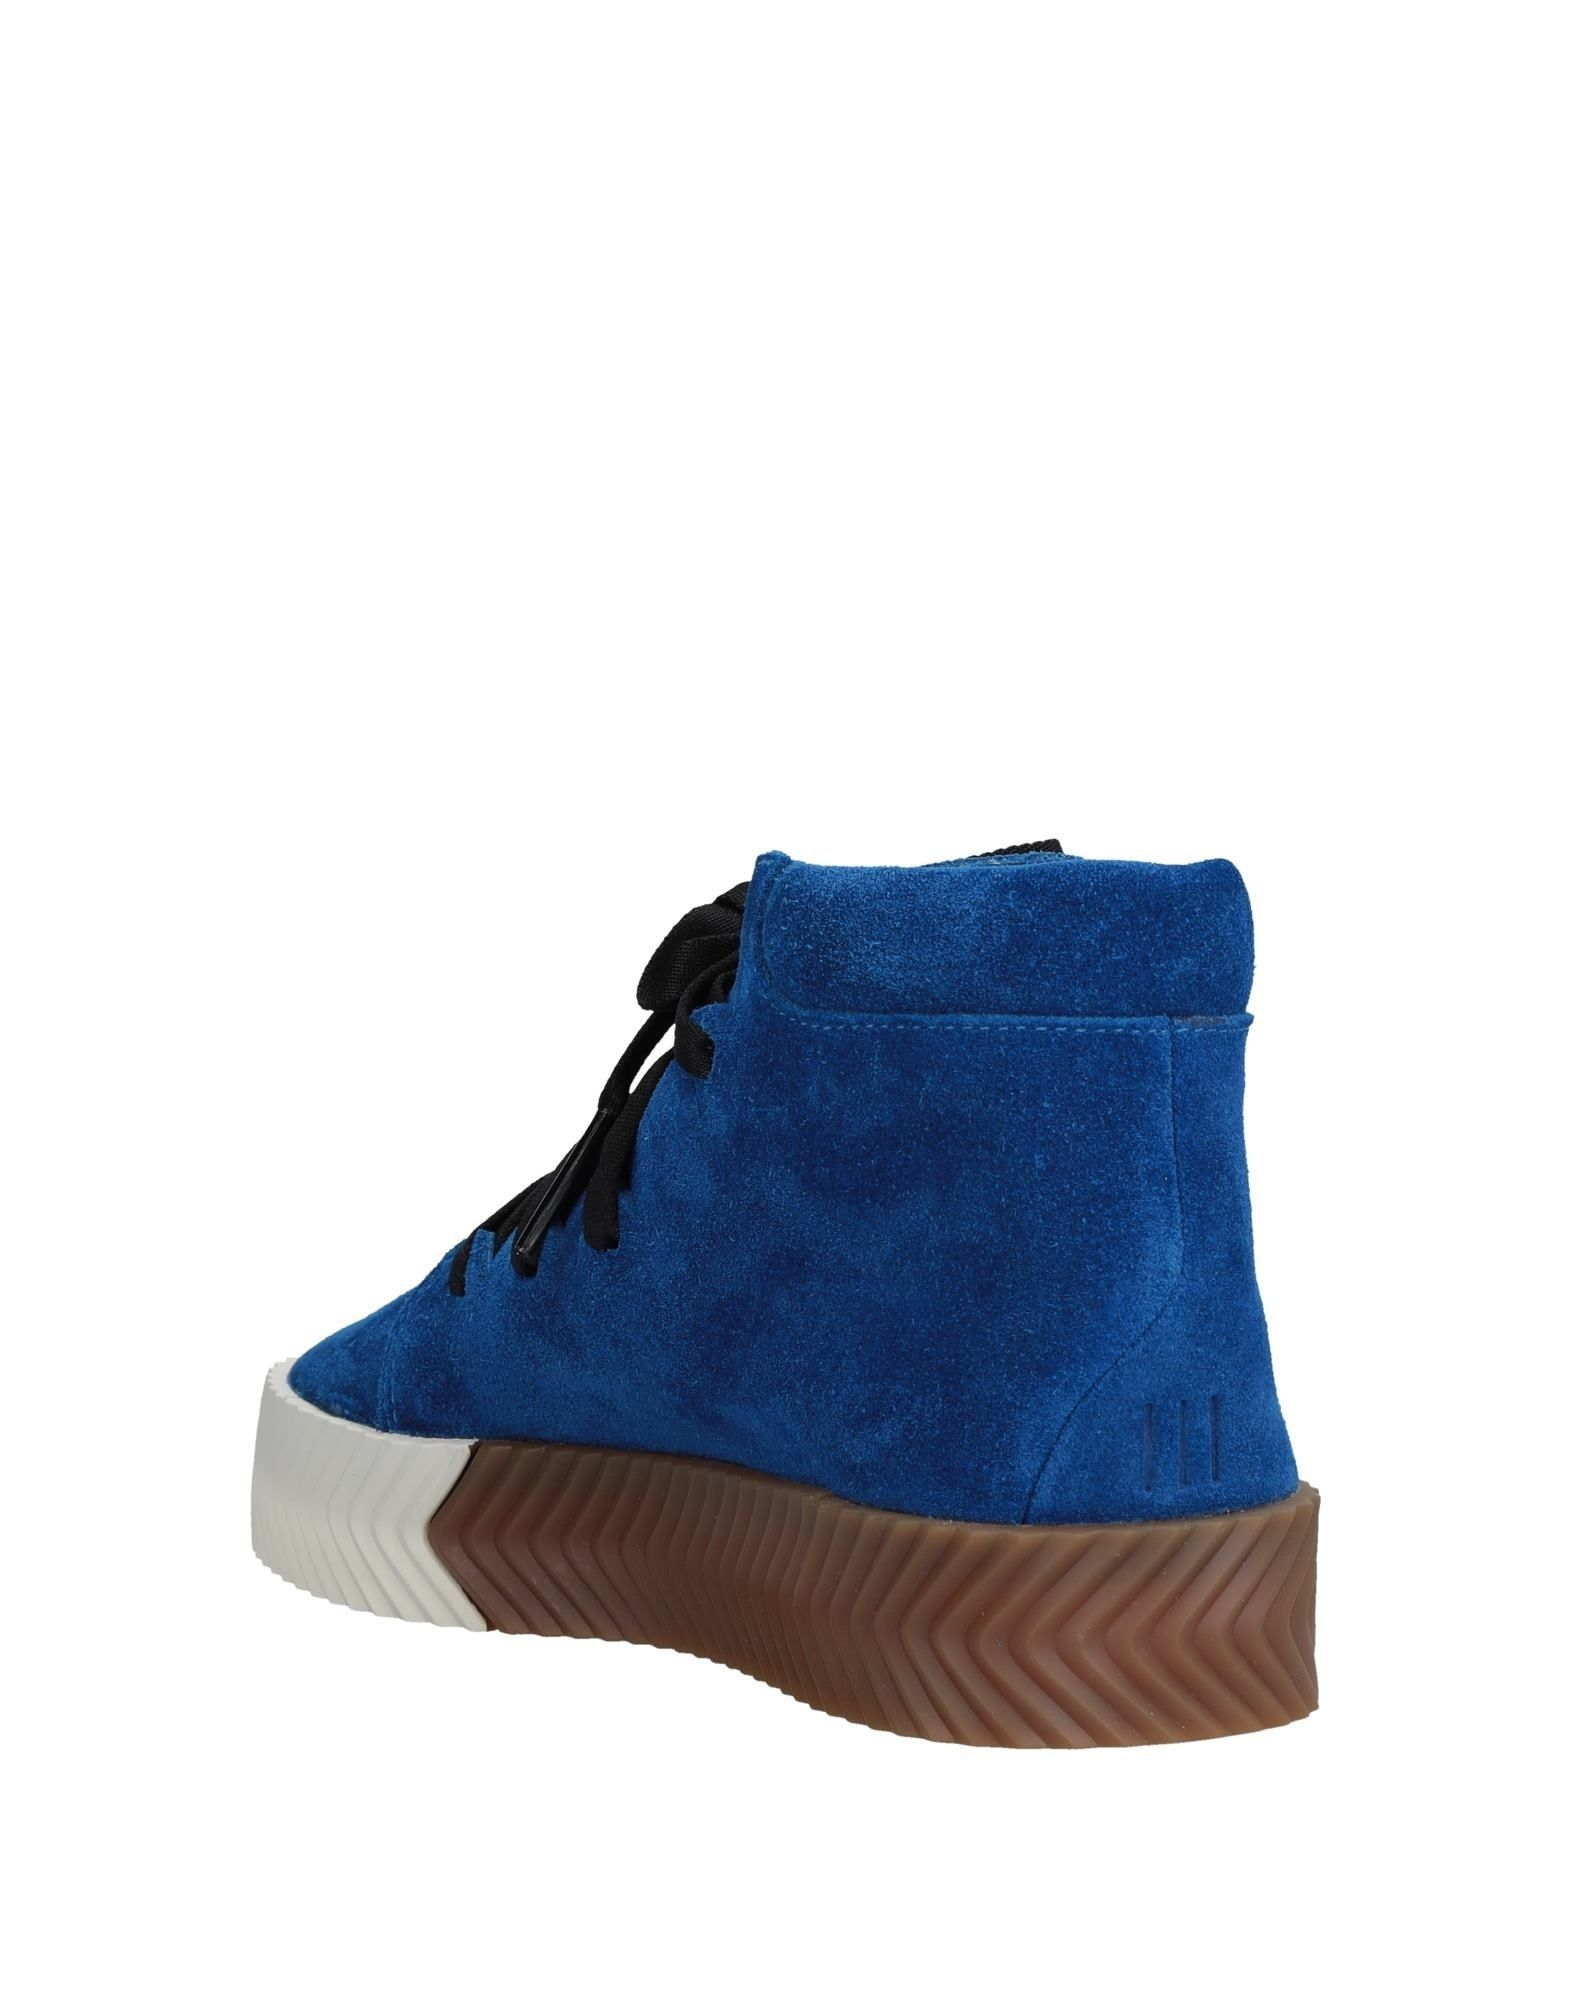 Adidas Bright Blue Leather Sneakers